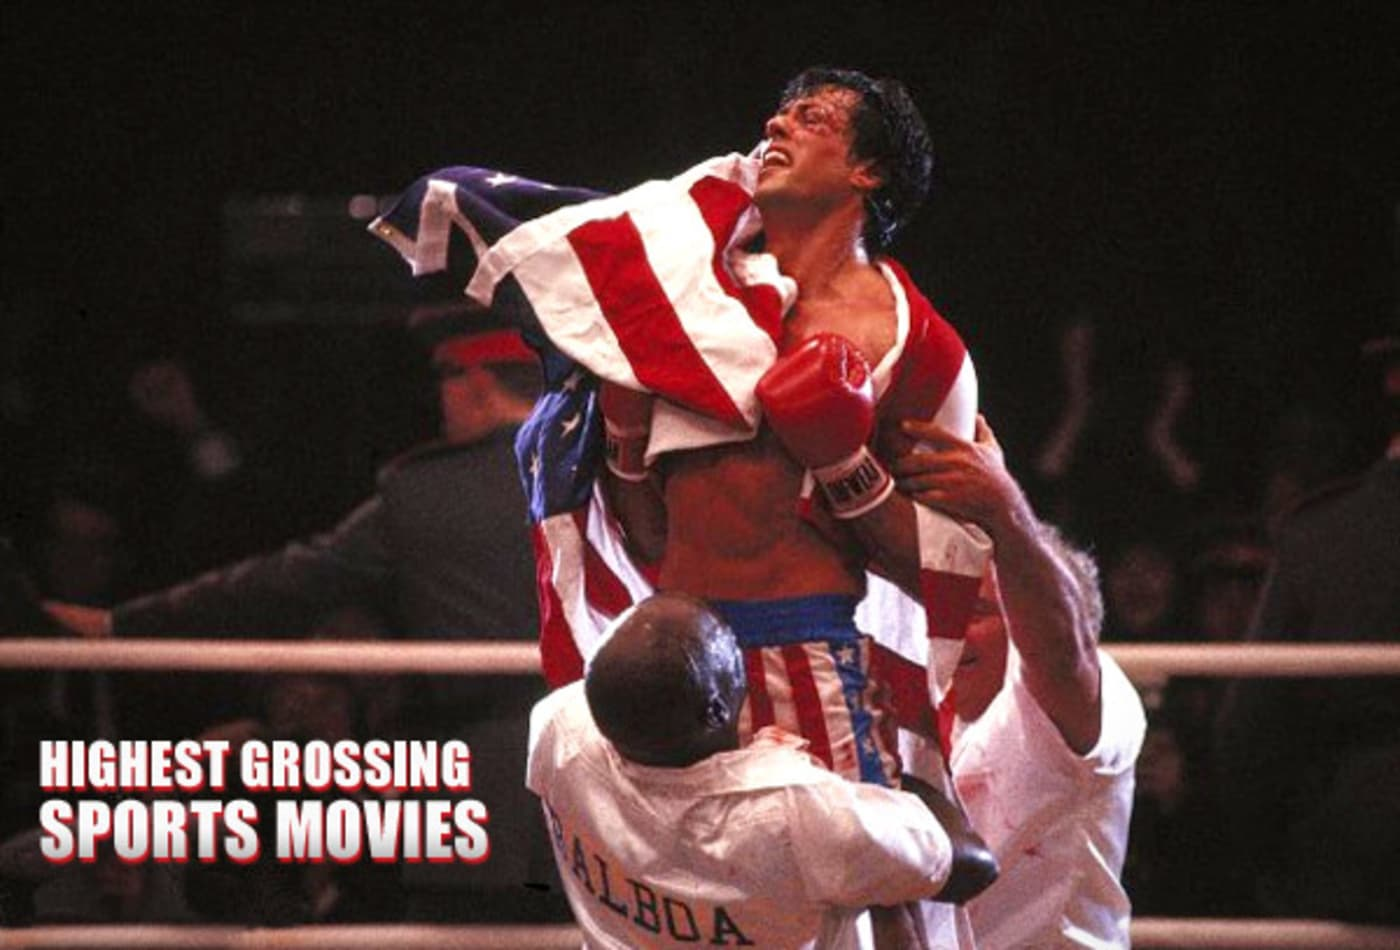 SS_Highest_Grossing_Sports_Movies_Cover.jpg